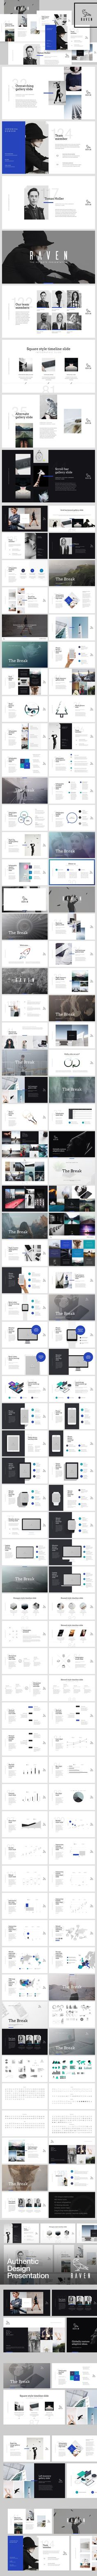 RAVEN Keynote Presentation Template. Business Infographic